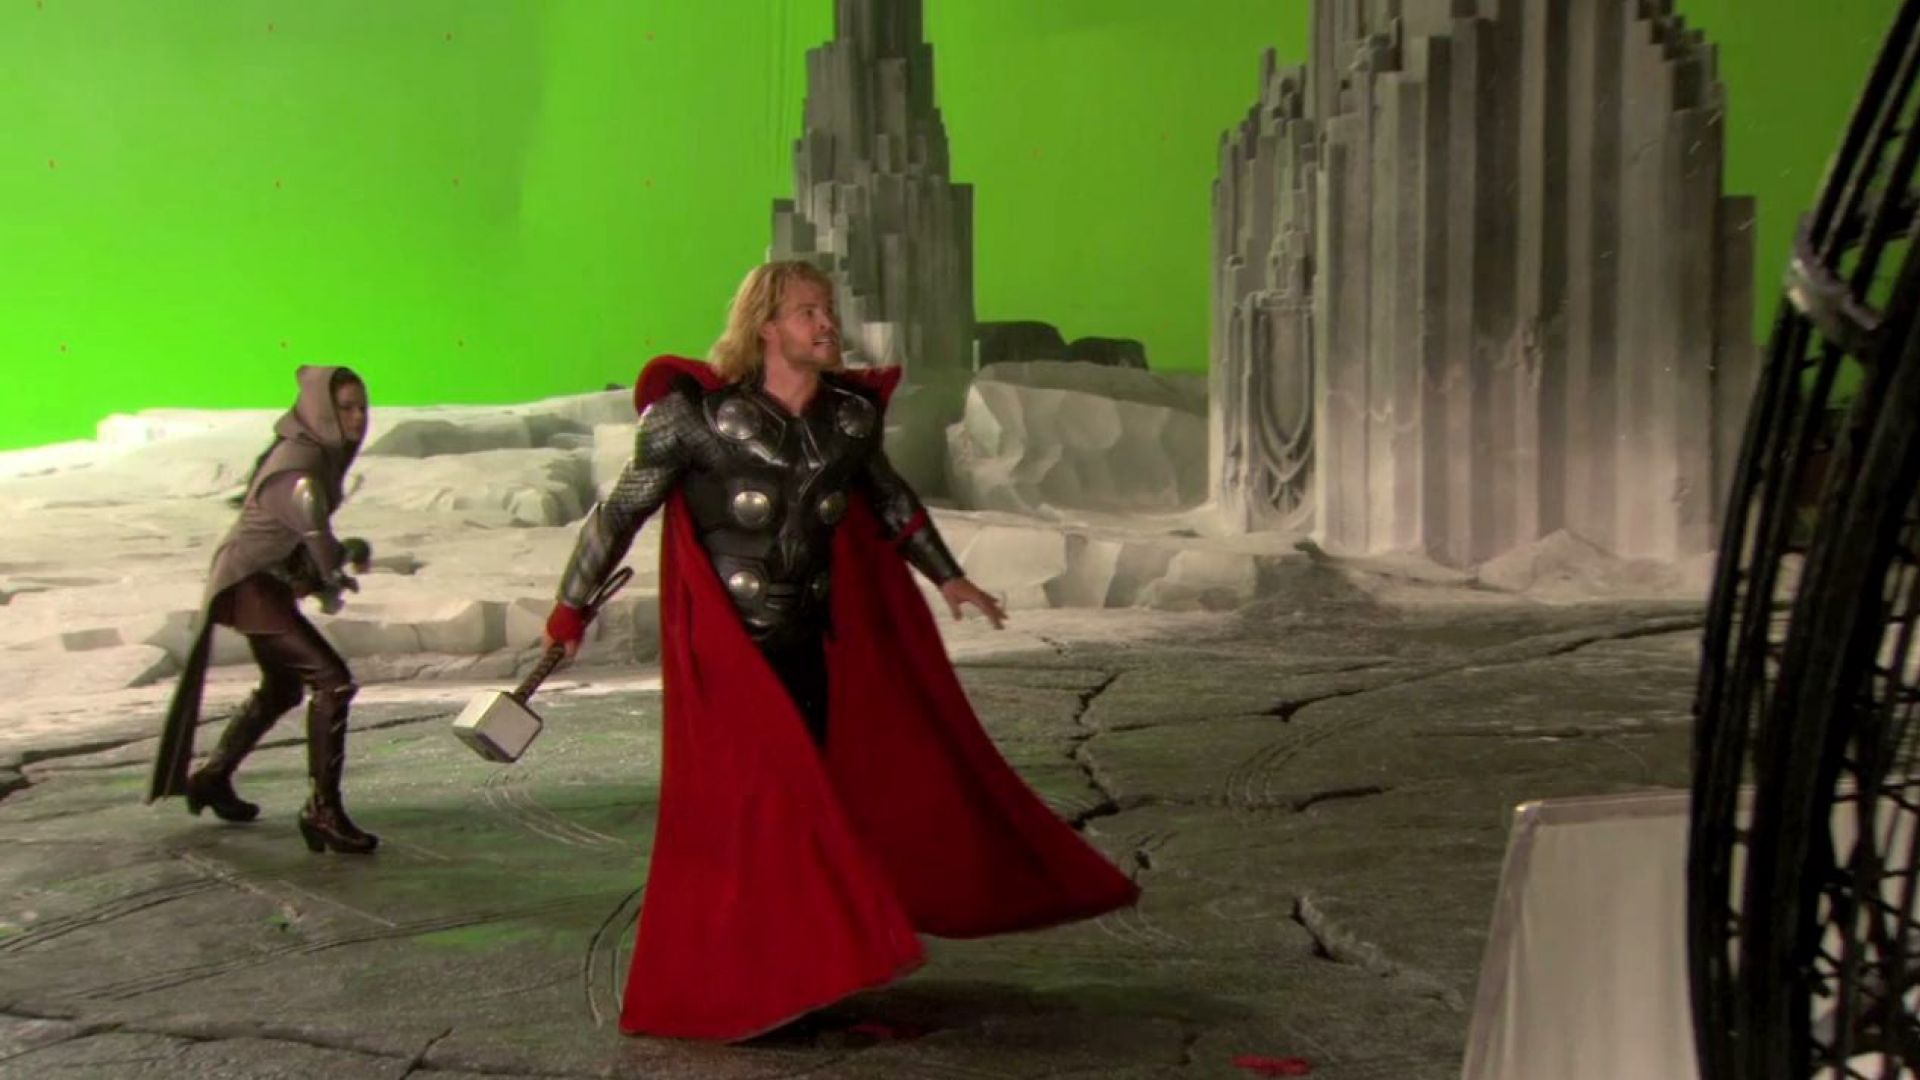 Kenneth Branagh, Natalie Portman and Anthony Hopkins talk about working with Chris Hemsworth on Thor